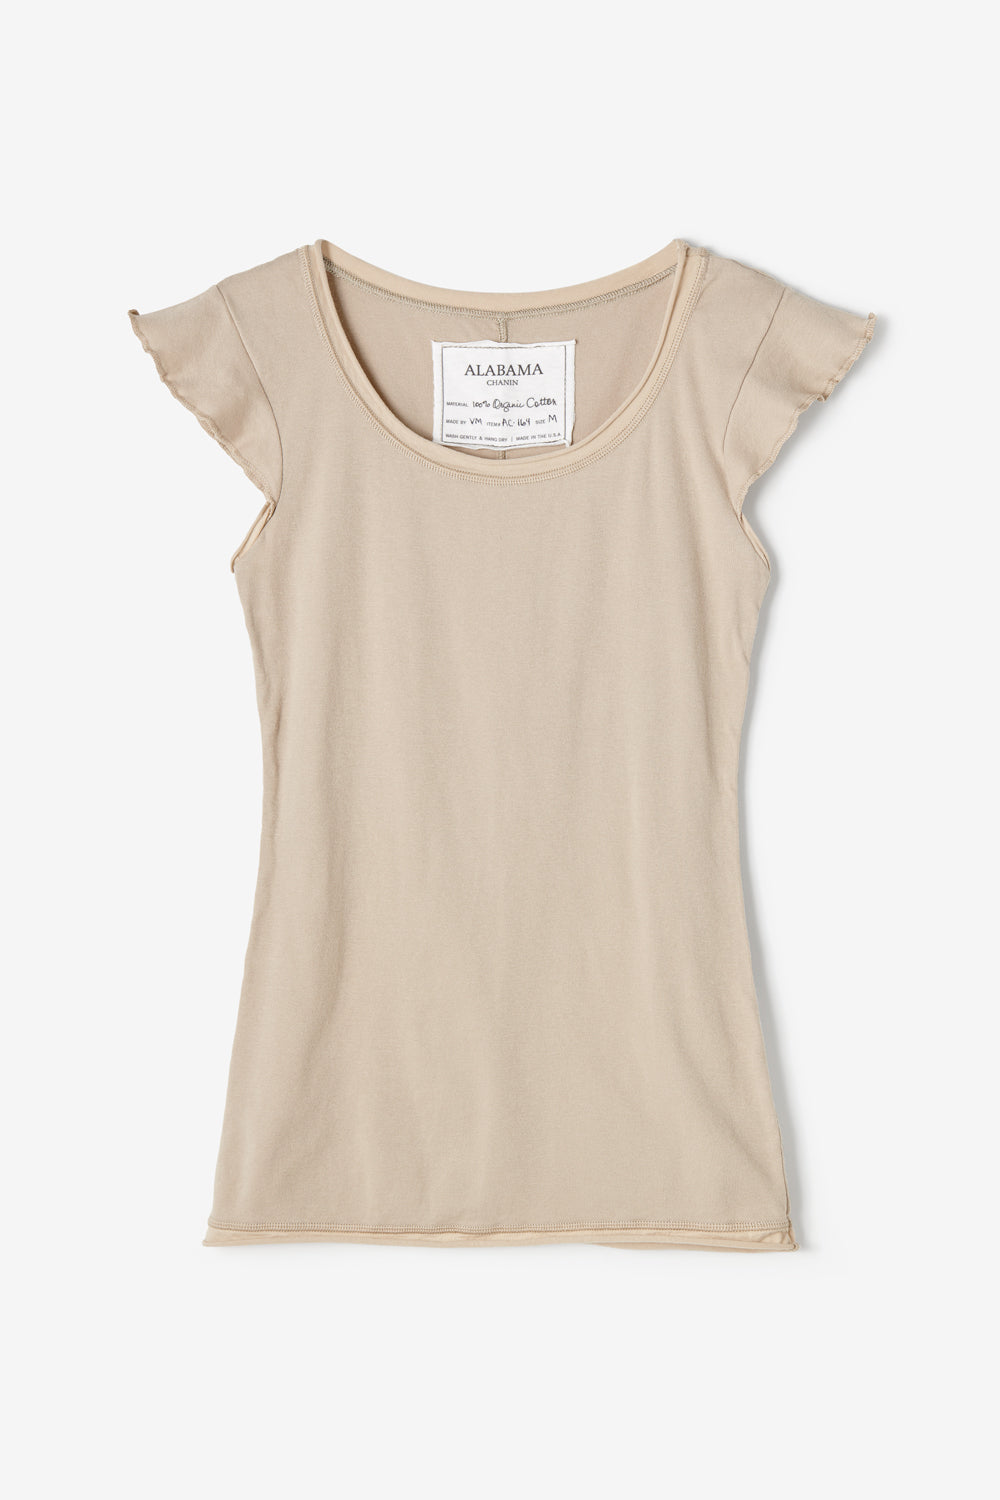 Alabama Chanin Felicity Top Organic Cotton Womens Rib Top with Flutter Sleeves and Scoop Neckline